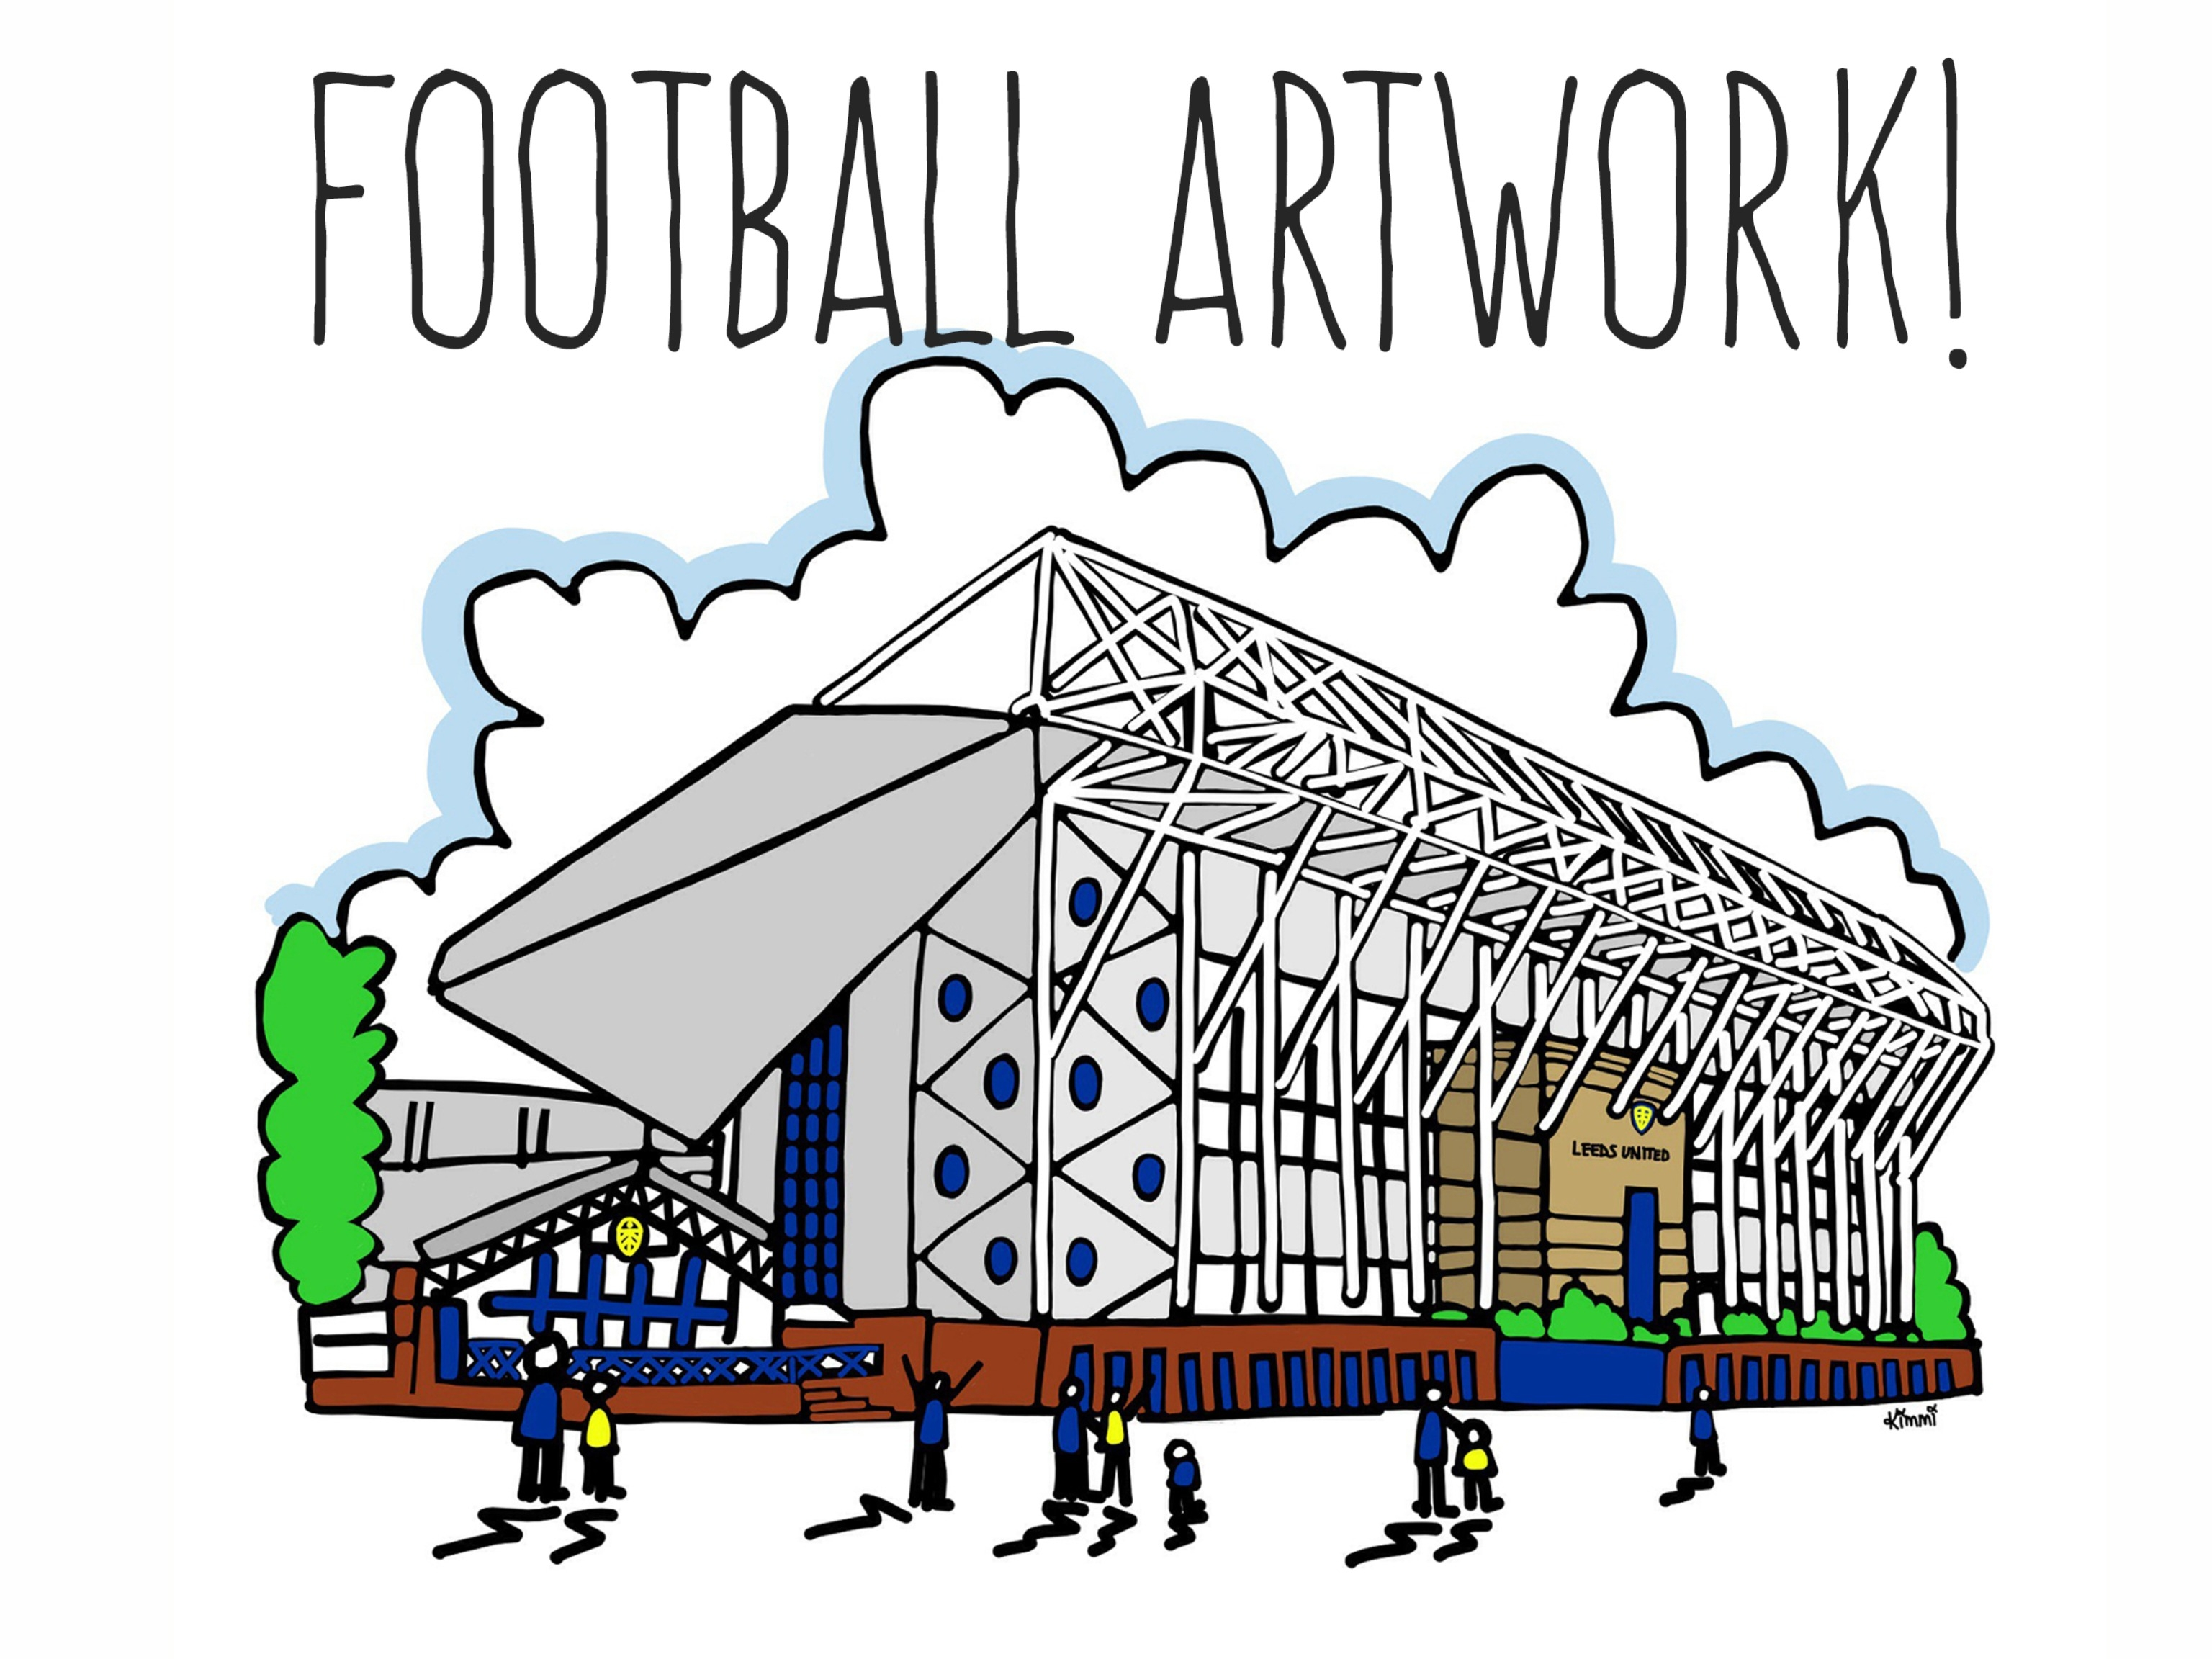 Leeds United Elland Road Artwork